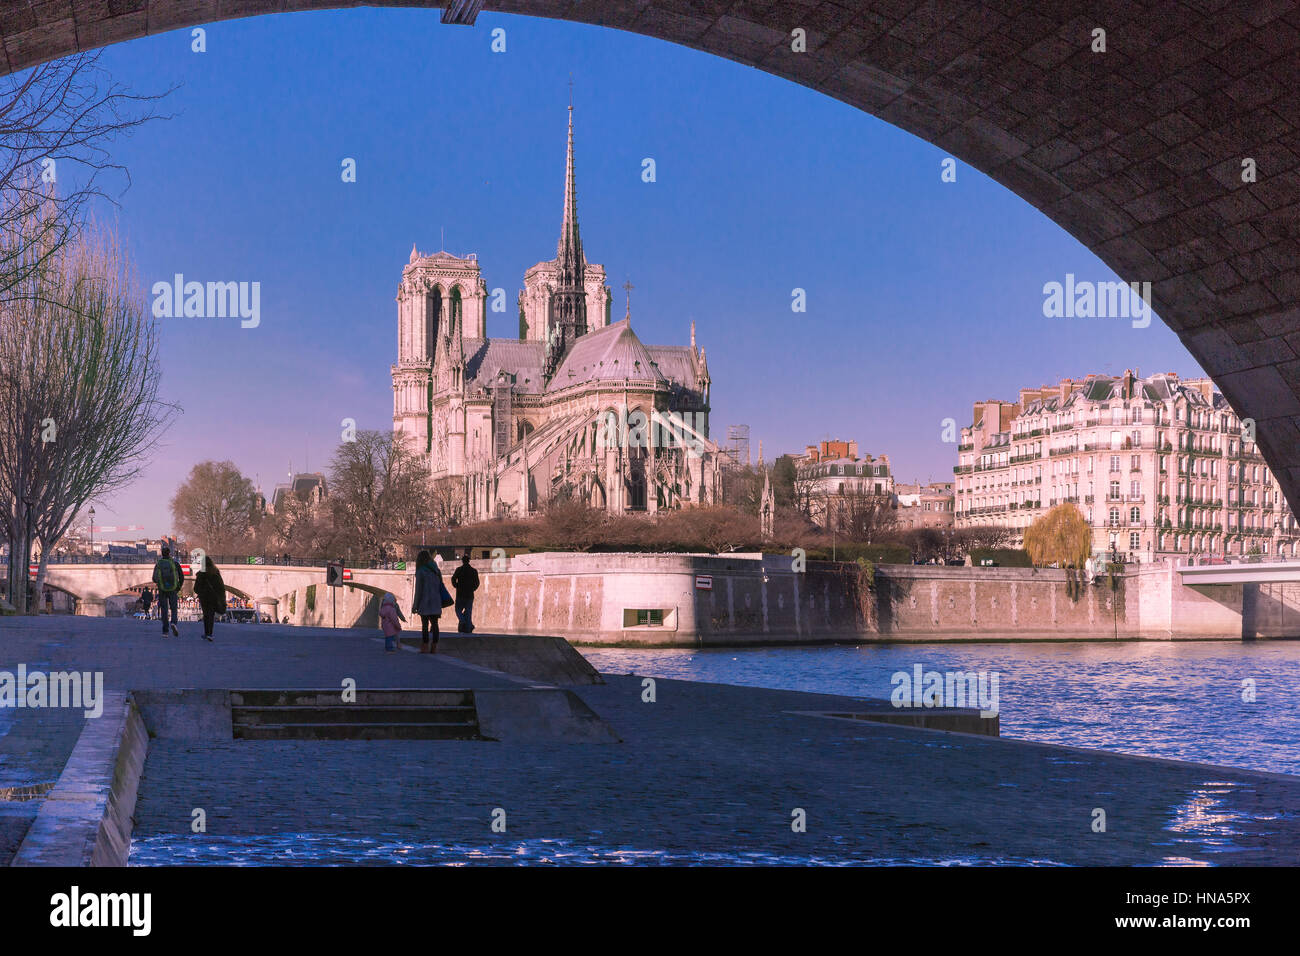 Paris in the winter morning, France - Stock Image